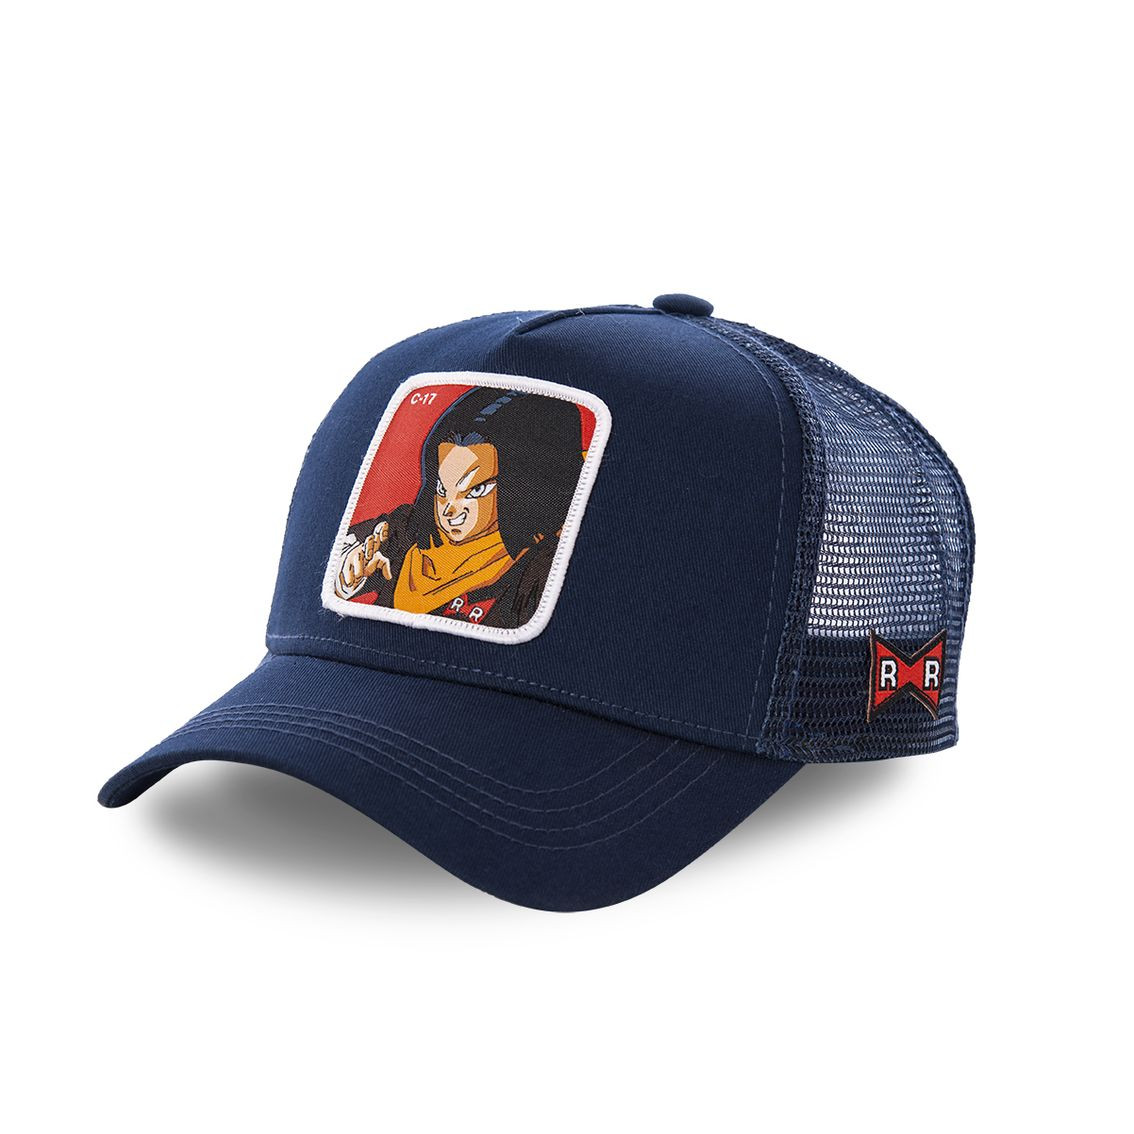 Casquette capslab dragon ball z c-17 bleu marine (photo)